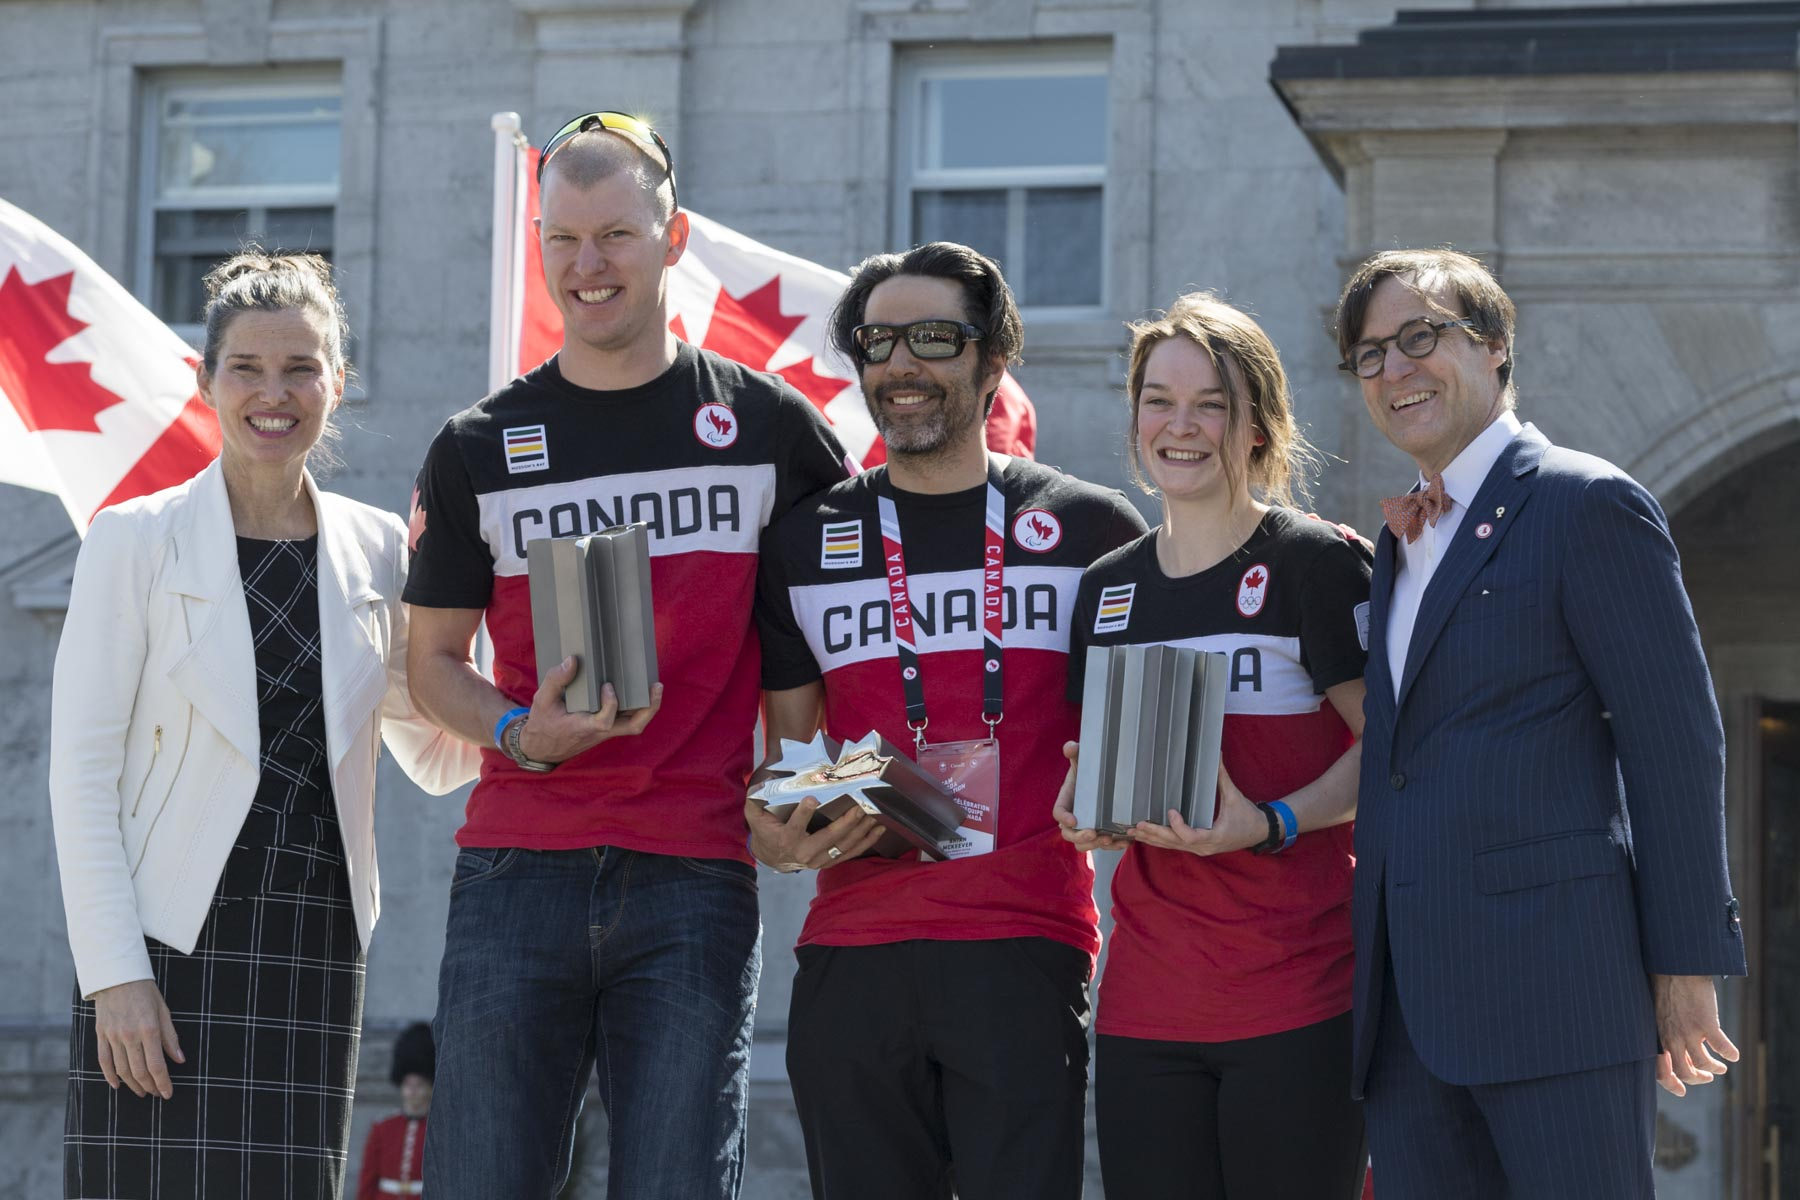 Marc-André Fabien, President of the Canadian Paralympic Committee (far right), and Minister Duncan (far left) presented the James Worrall Flag Bearer Award to (from left to right) Mark Arendz and Brian McKeever, para nordic cross country skiers, as well as to Kim Boutin, short track speed skater.